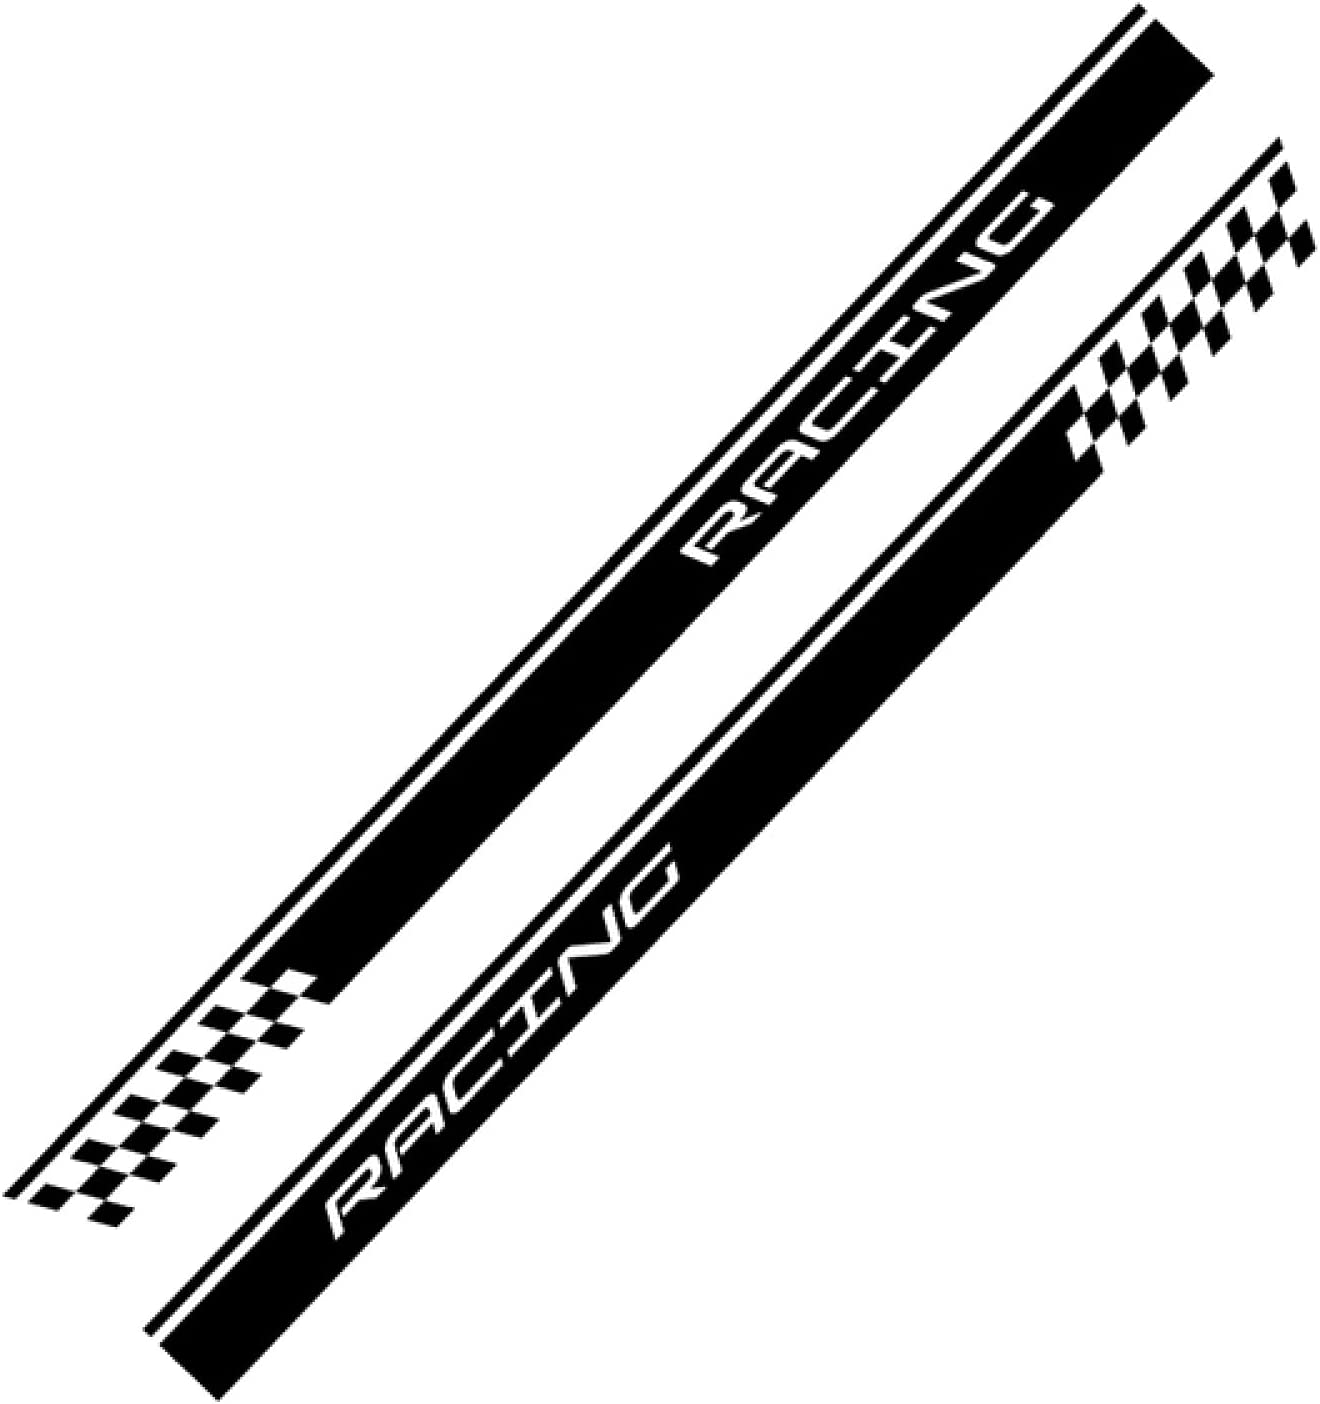 GLLXPZ 2PCS Car Door Side Skirt Ford Regular discount Focus MK1 NEW before selling ☆ Sticker MK2 for